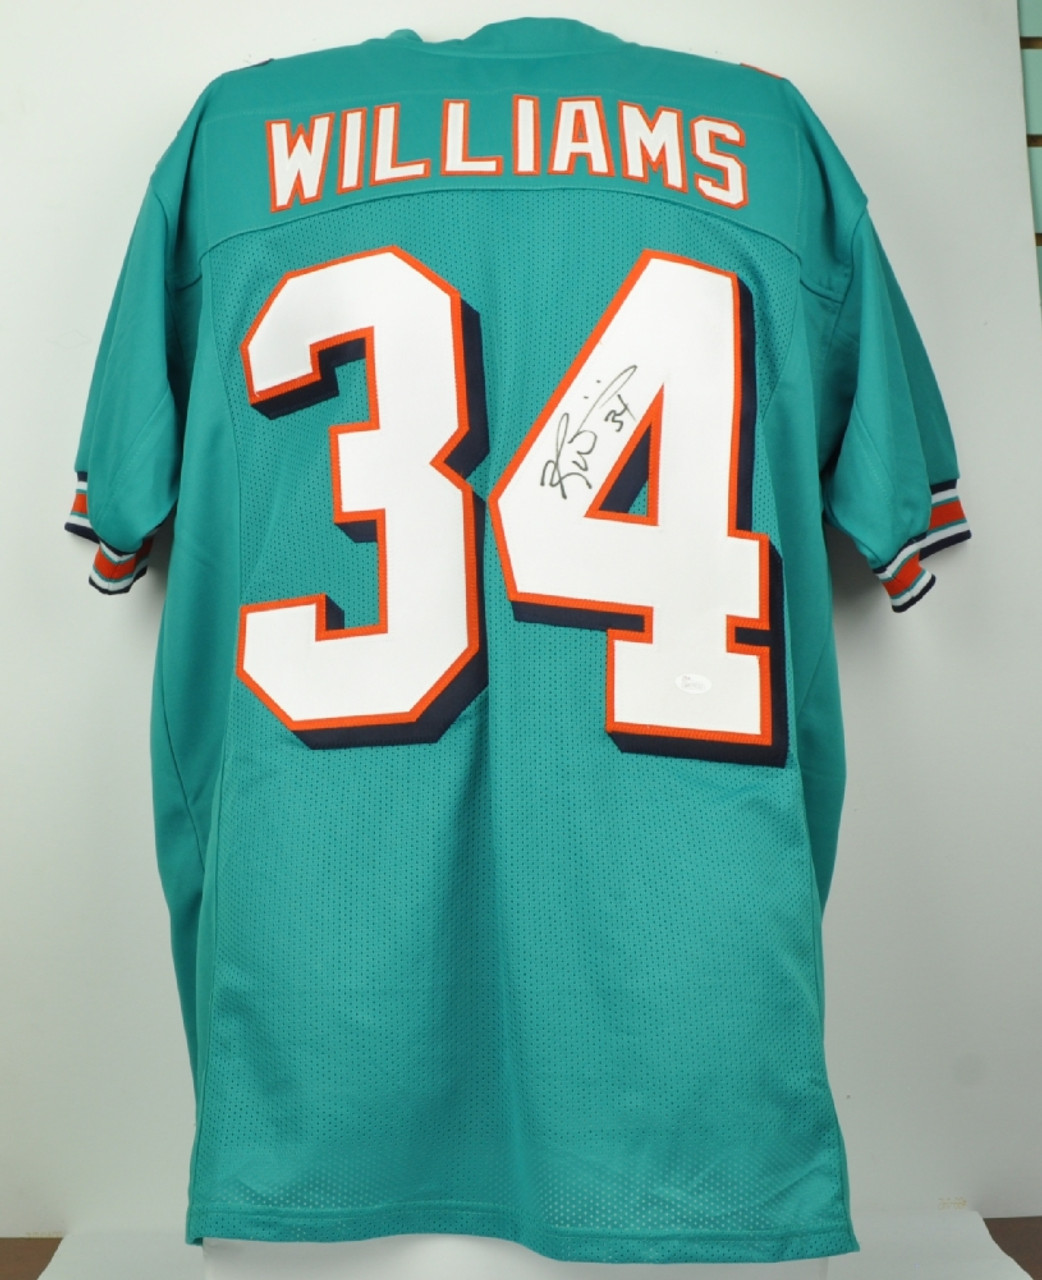 ddc316a6 NFL Miami Dolphins Running Back Ricky Williams 34 Signed Autographed XL  Teal Throwback Replica Jersey JSA Mens